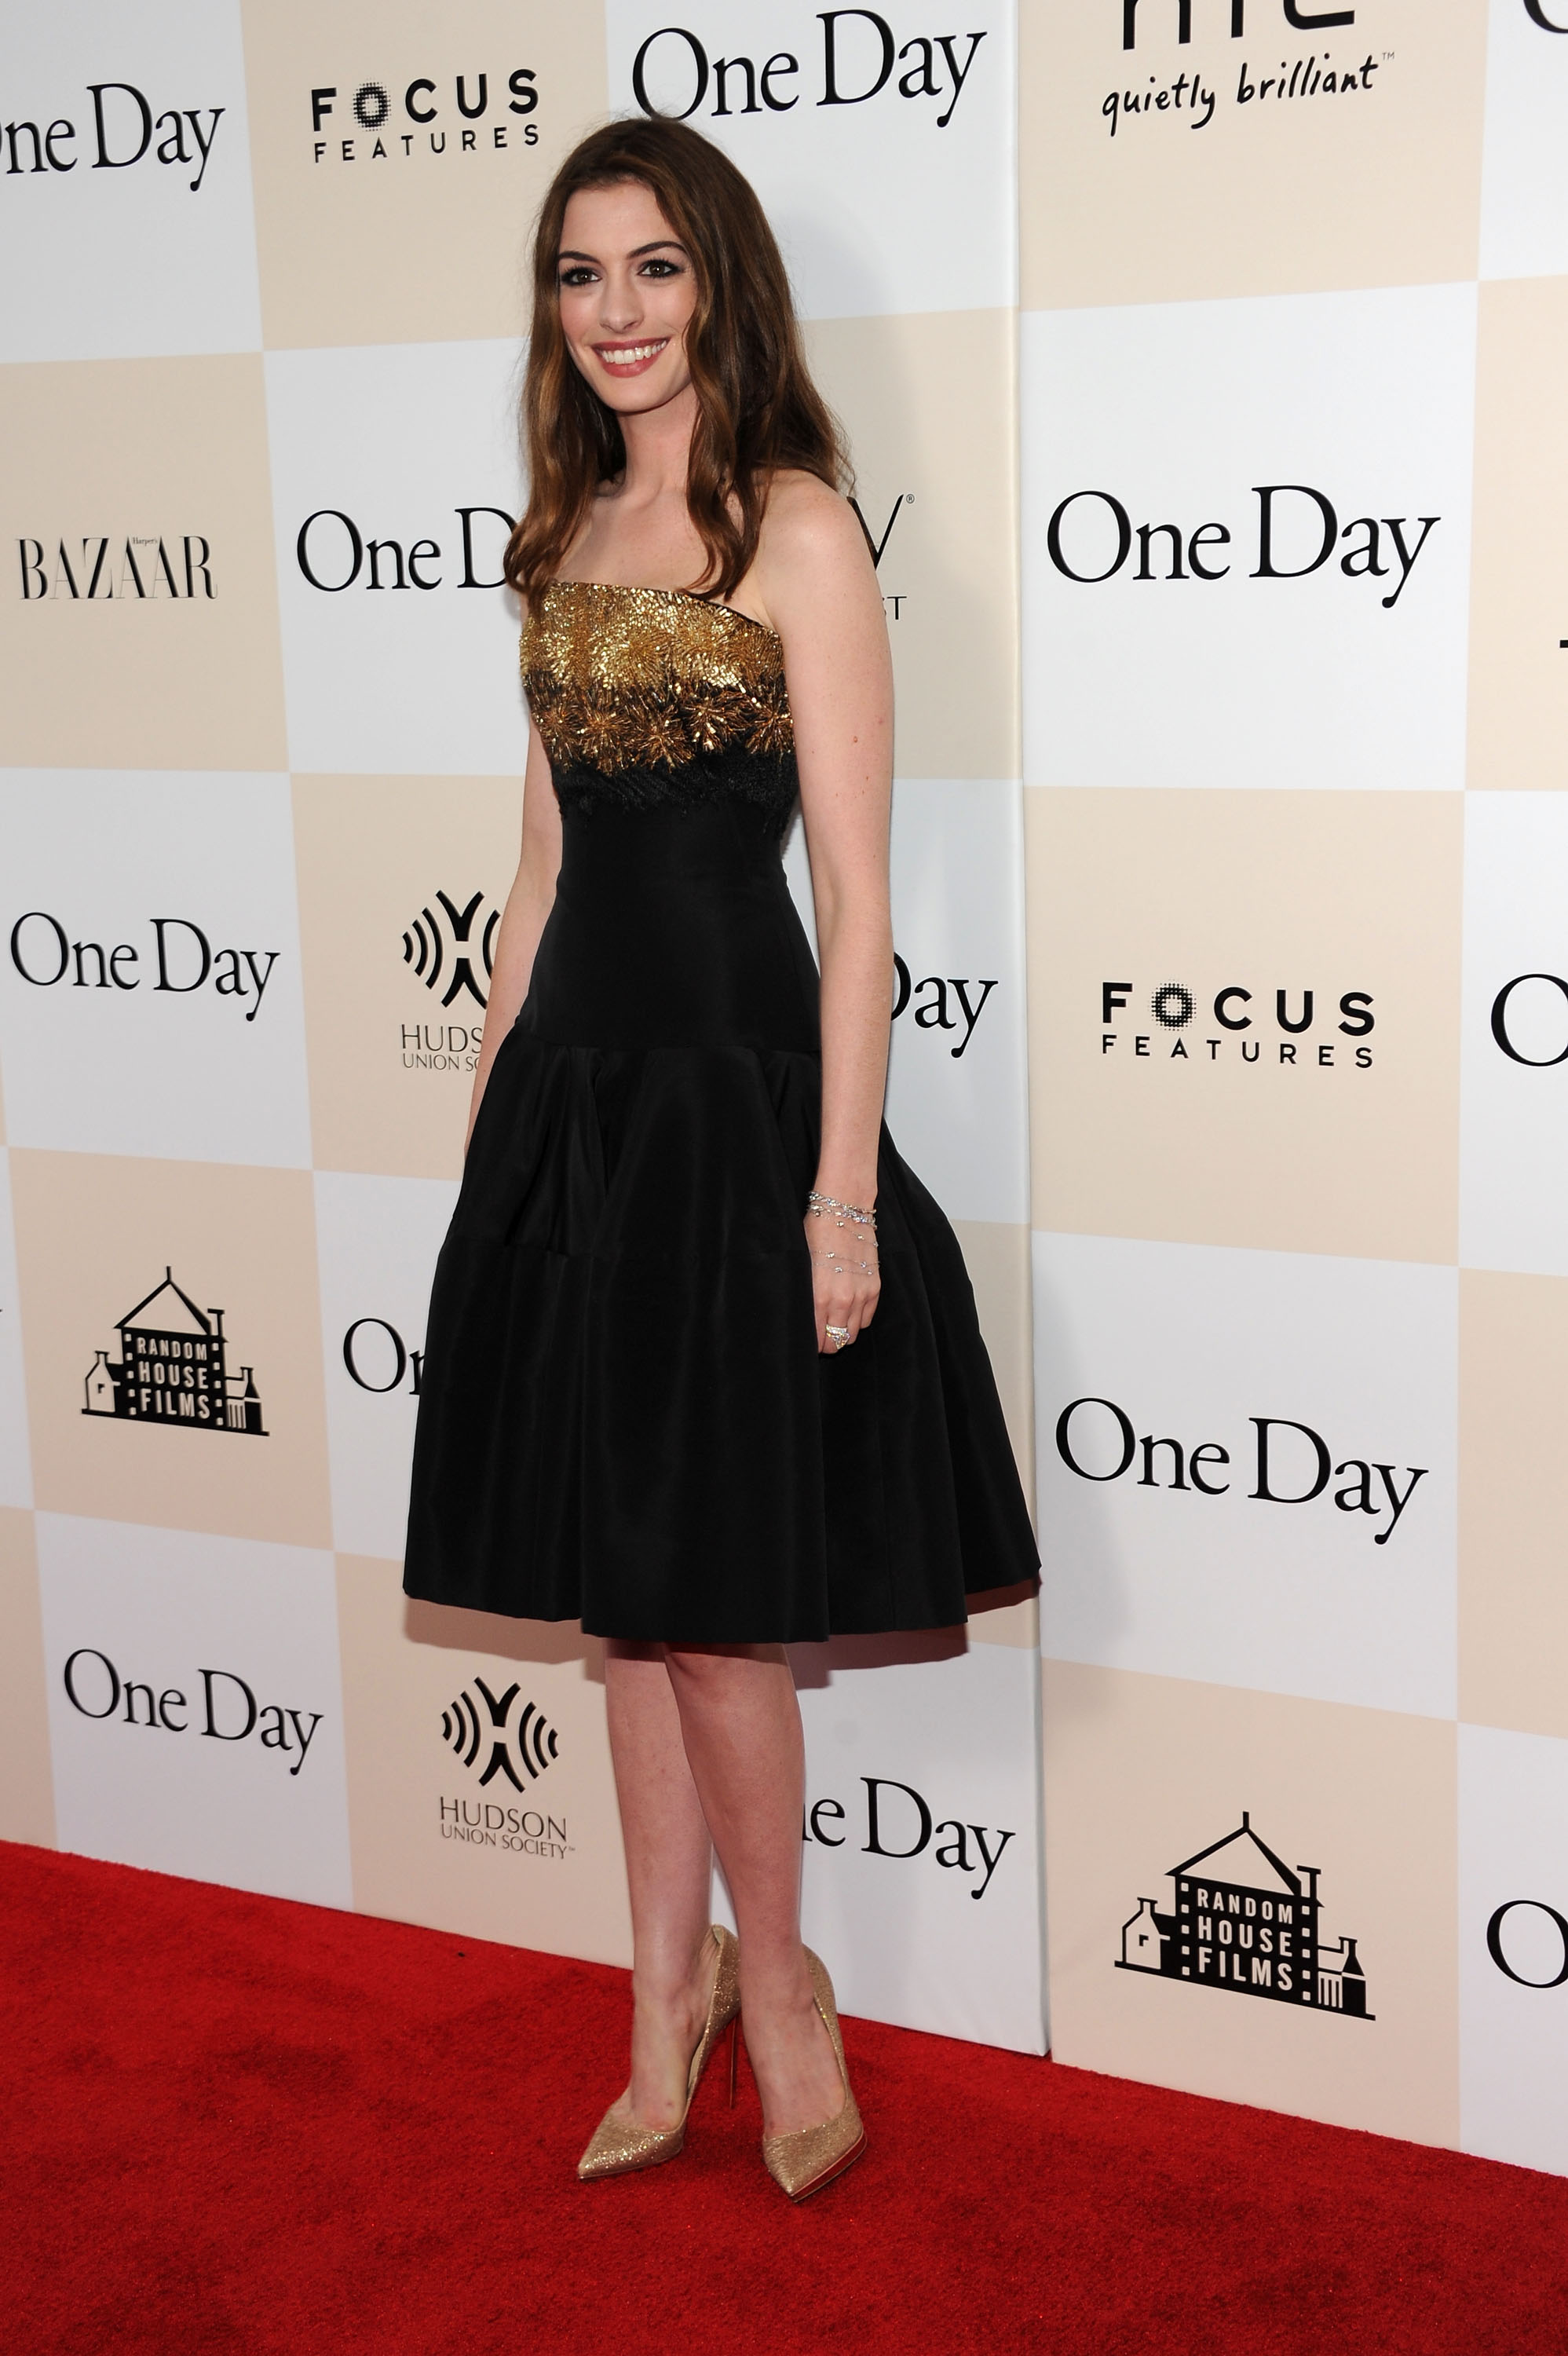 884742188_Anne_Hathaway_One_Day_Premiere_in_NYC6_122_505lo.jpg